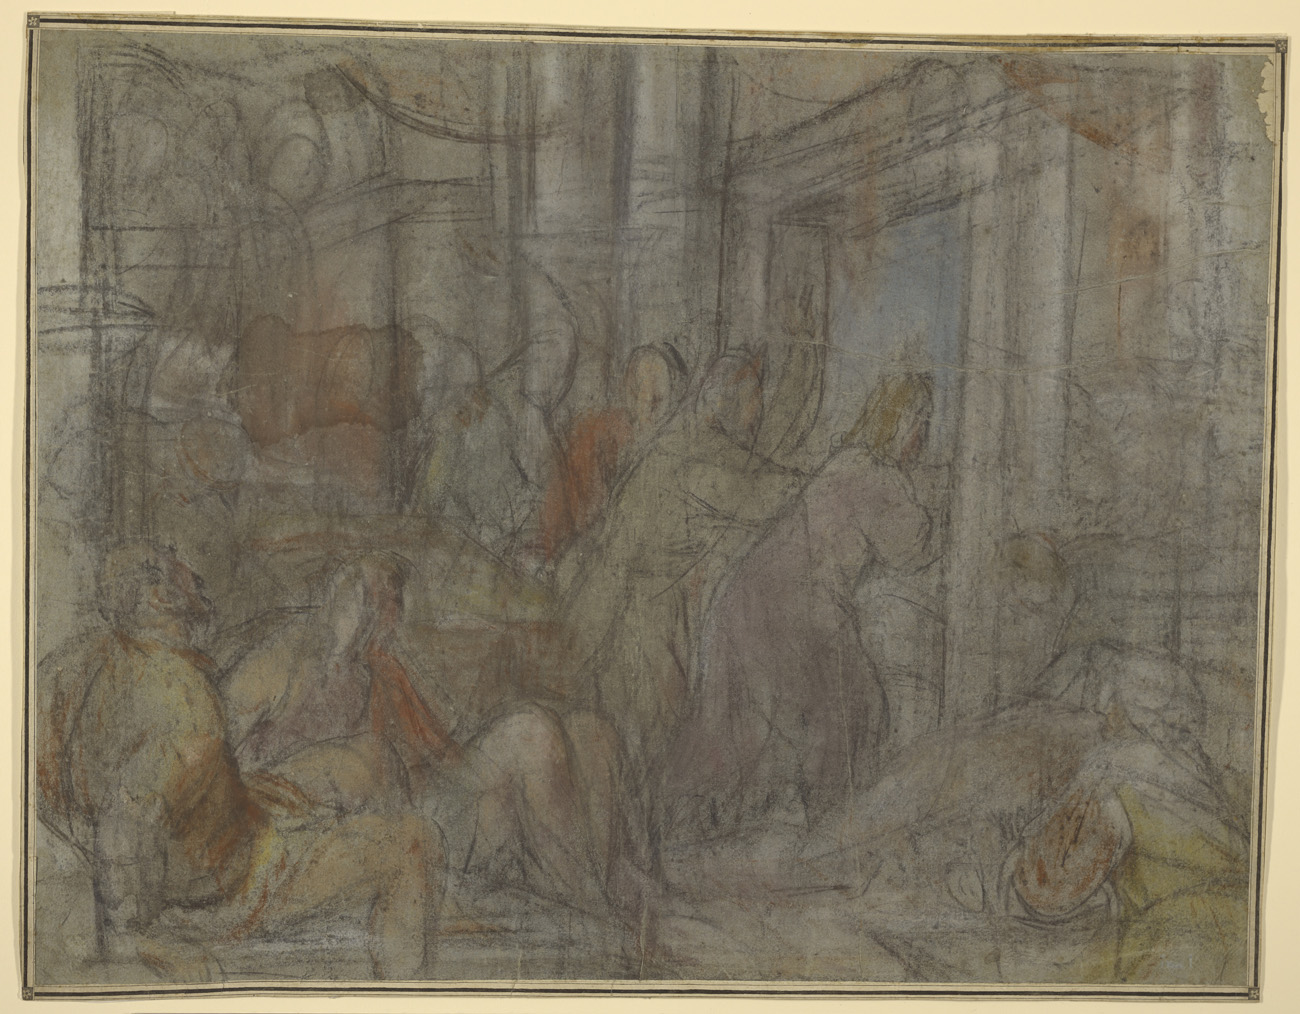 Christ Driving the Money Changers from the Temple / Jacopo Bassano